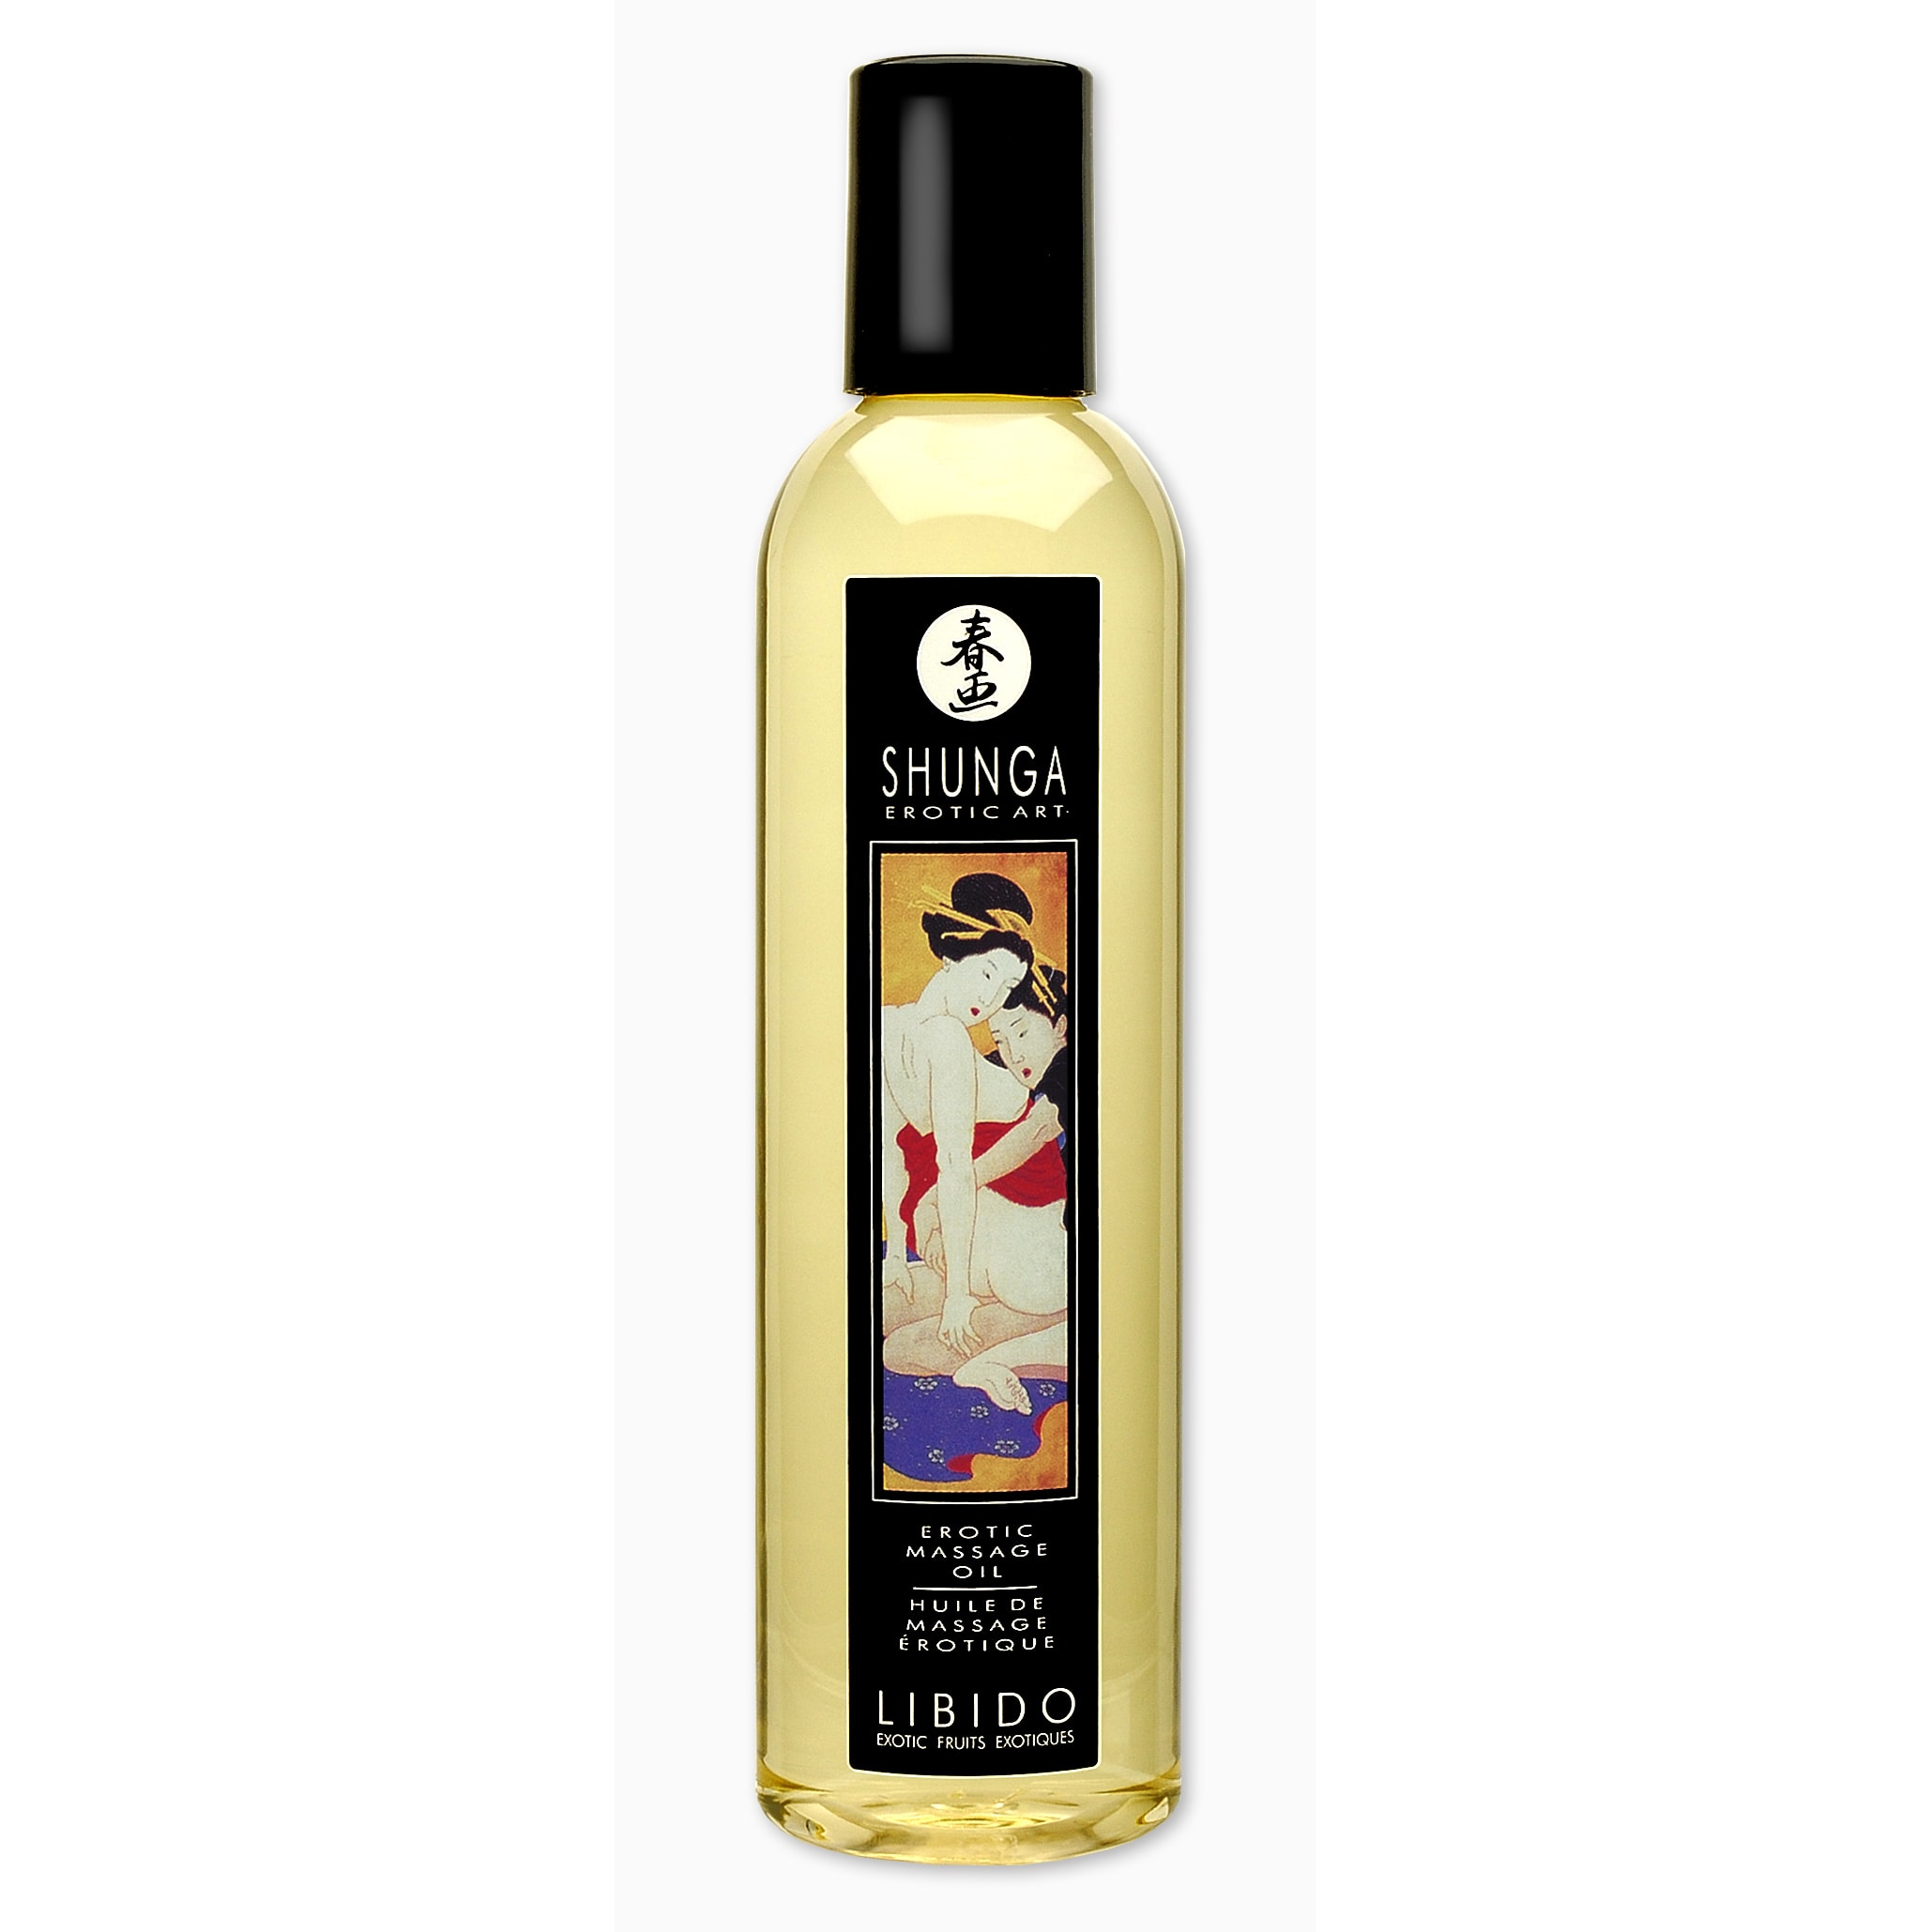 Erotic oils lotions